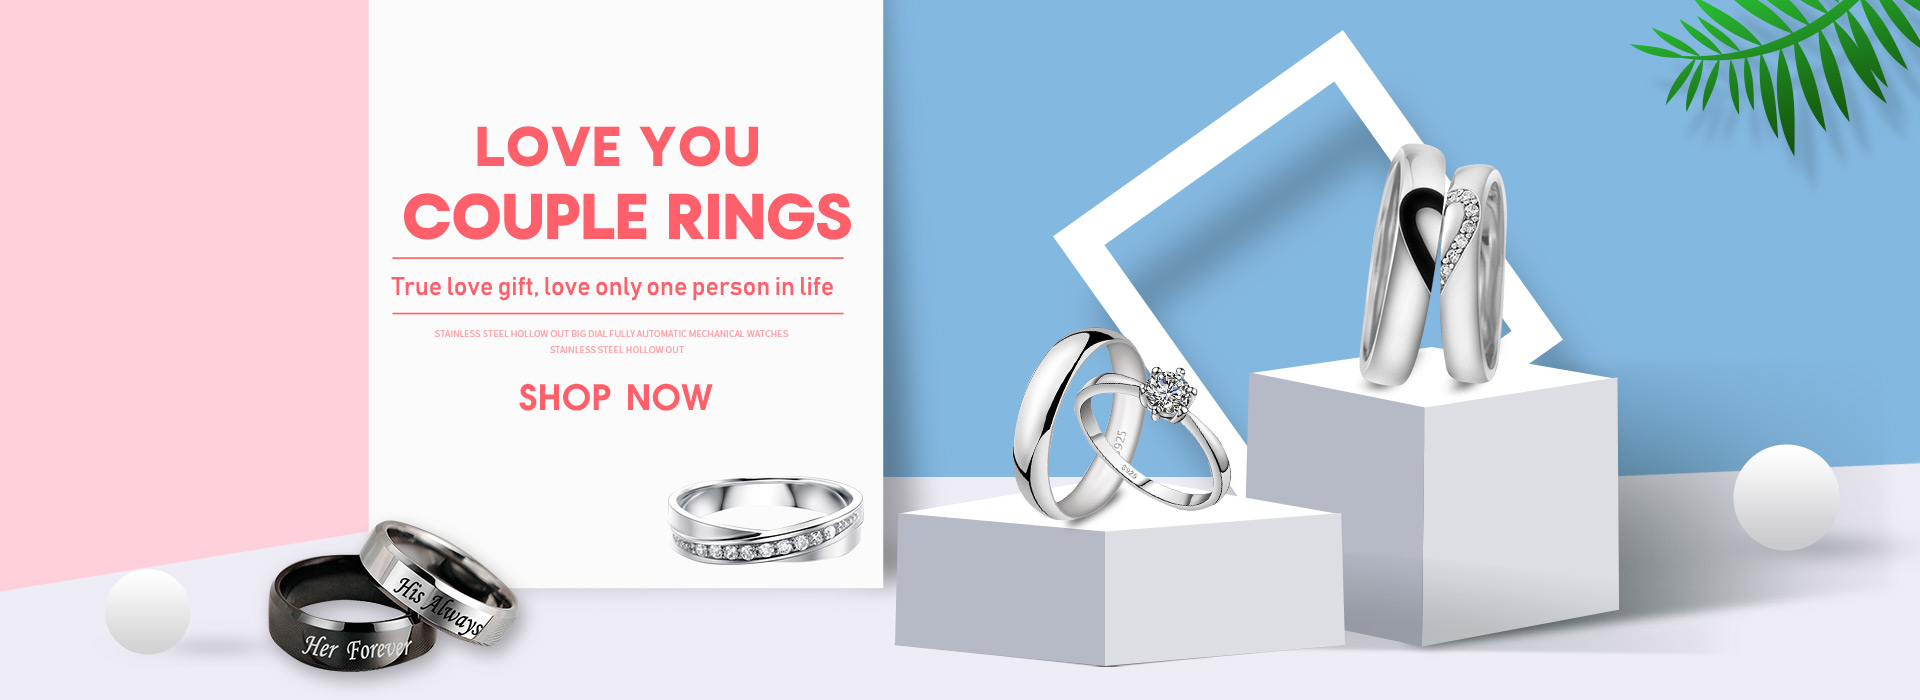 Urcouple.com Rings Banner